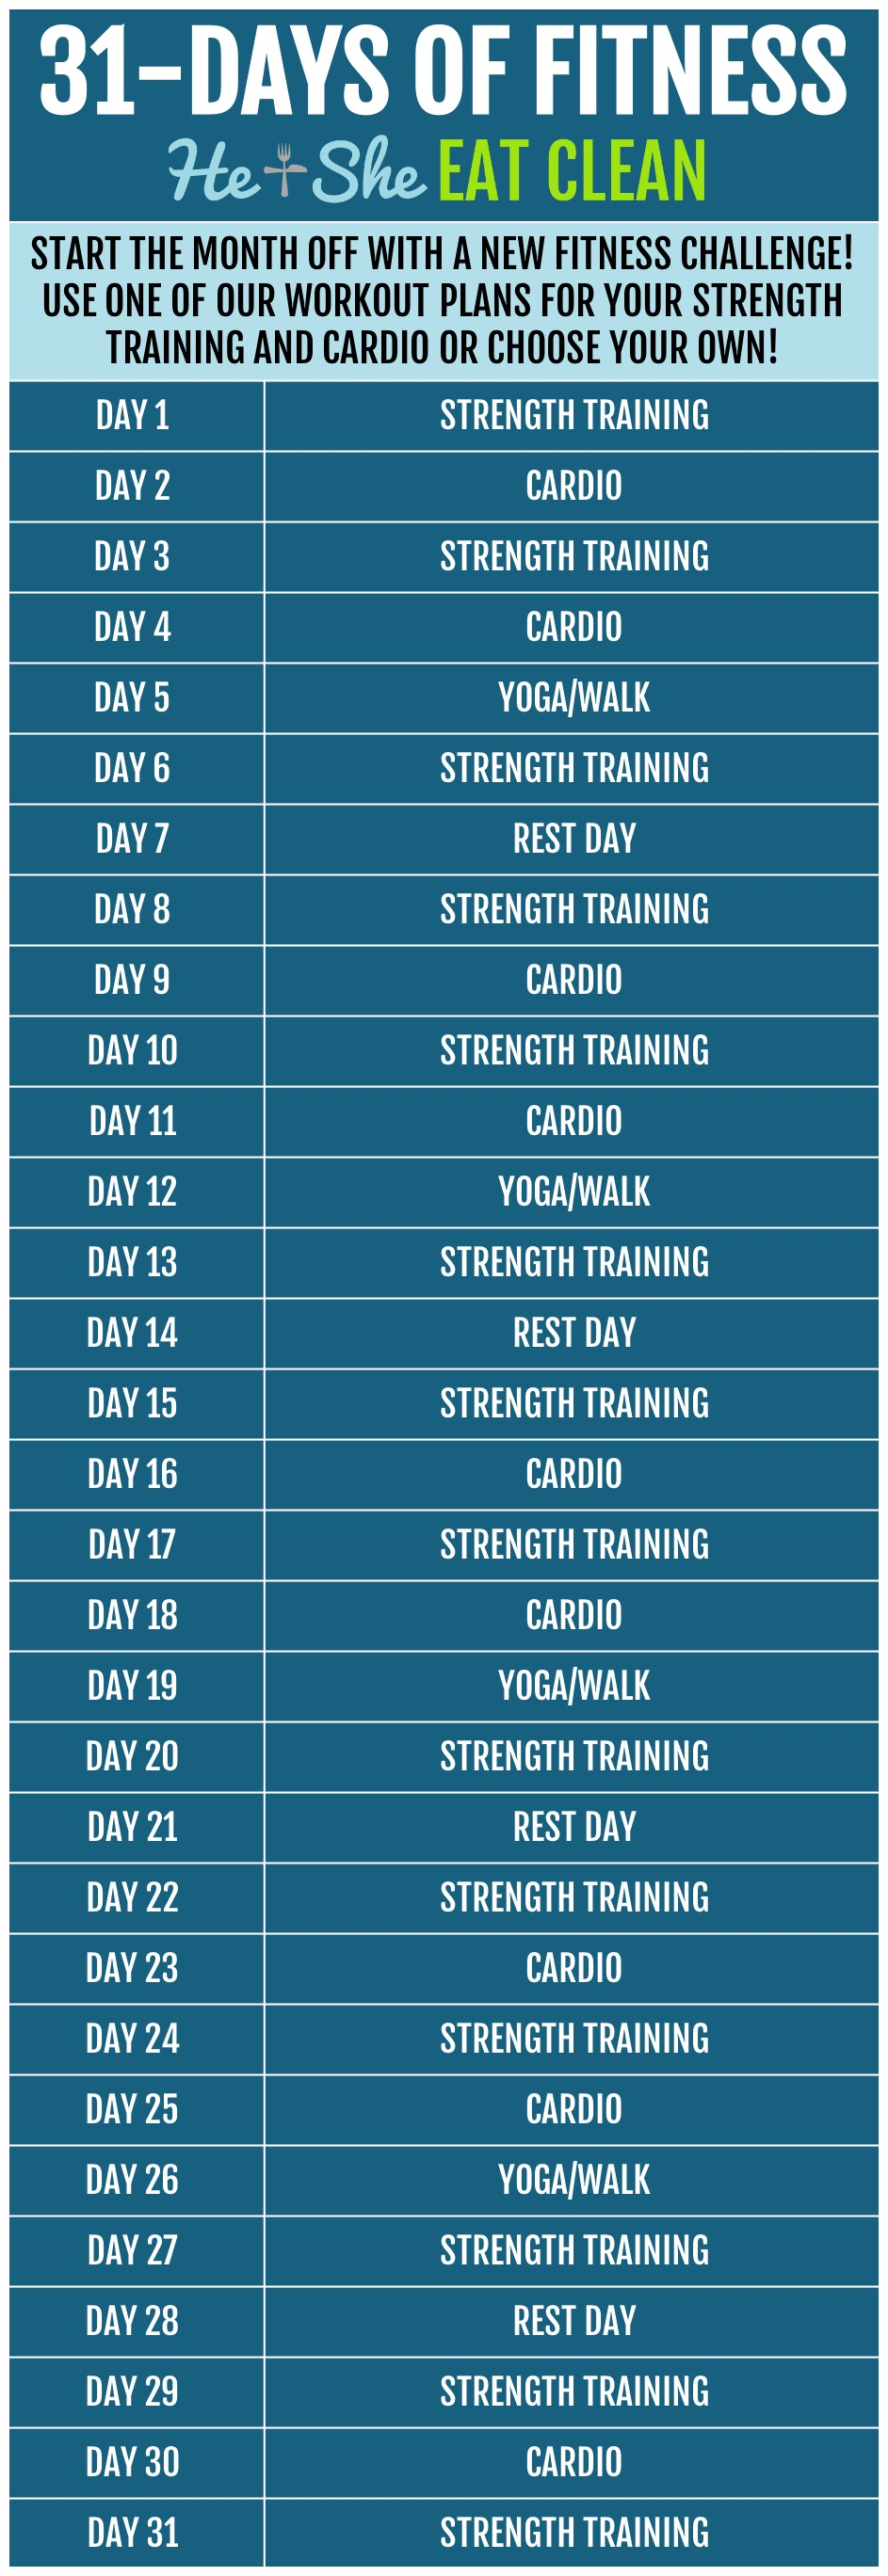 31-Days of Fitness Challenge